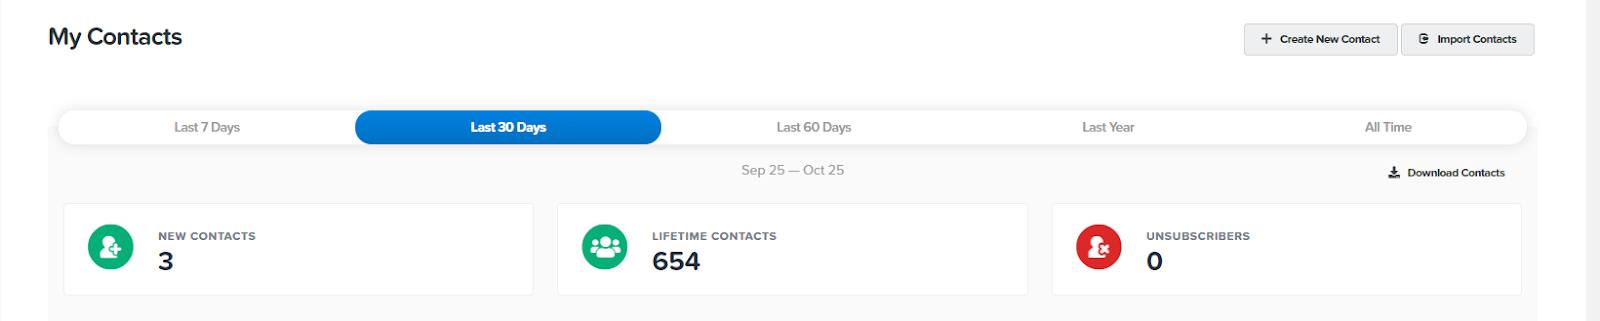 My Contacts screen in CLickFunnels